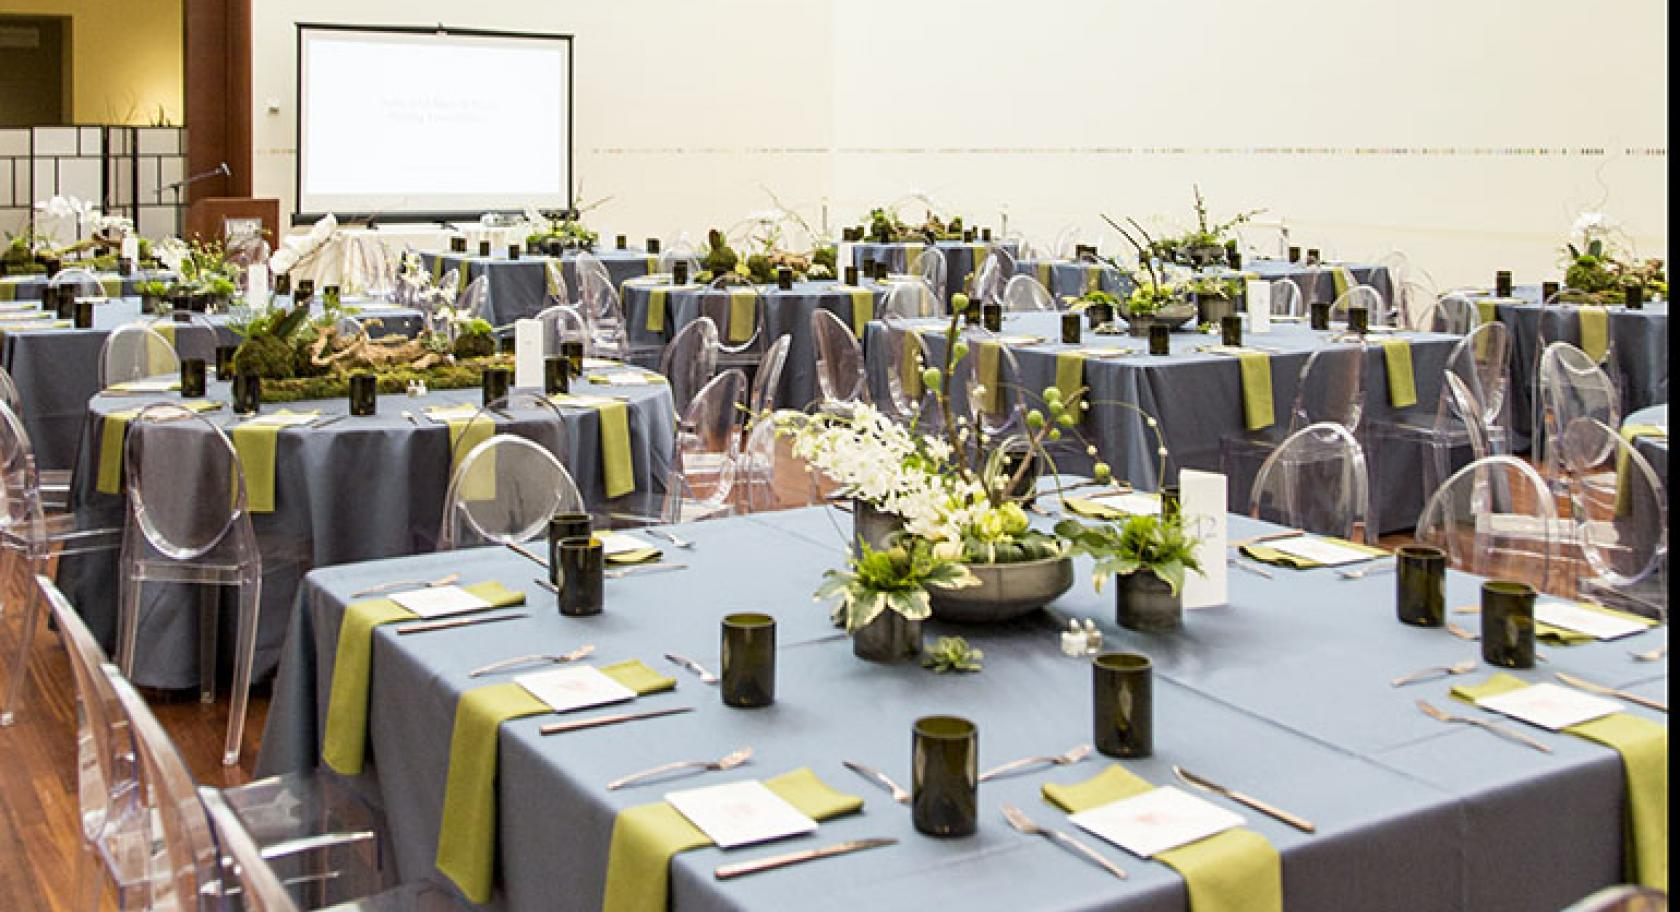 Modern wedding table settings lucite chairs with green and gray linens in the UMFA Great Hall